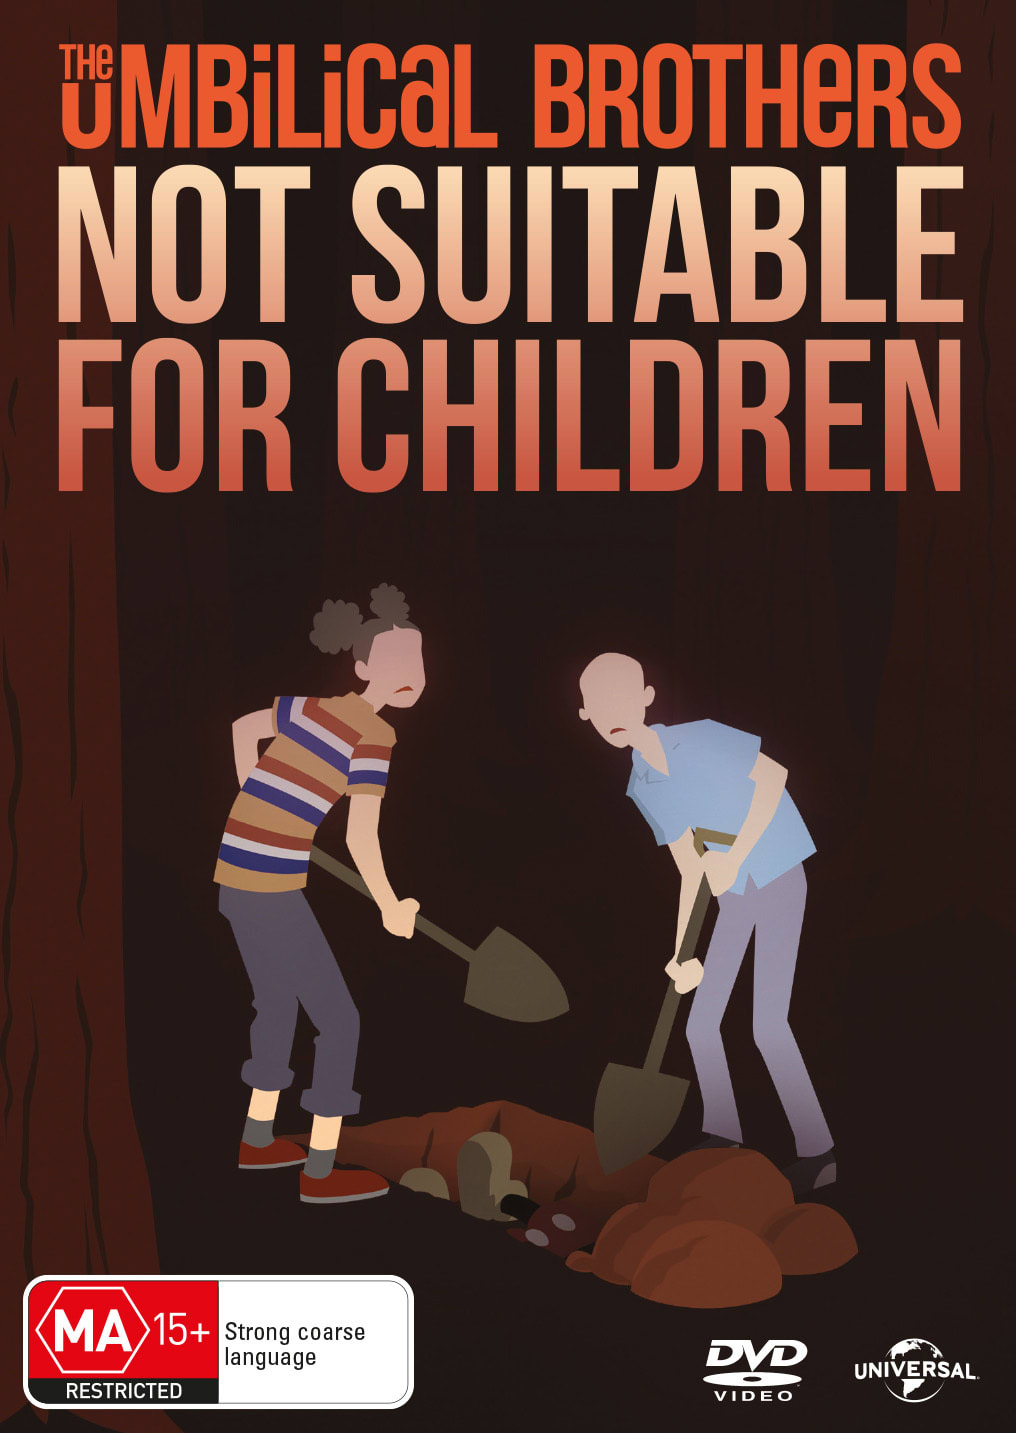 The Umbilical Brothers: Not Suitable for Children [DVD]